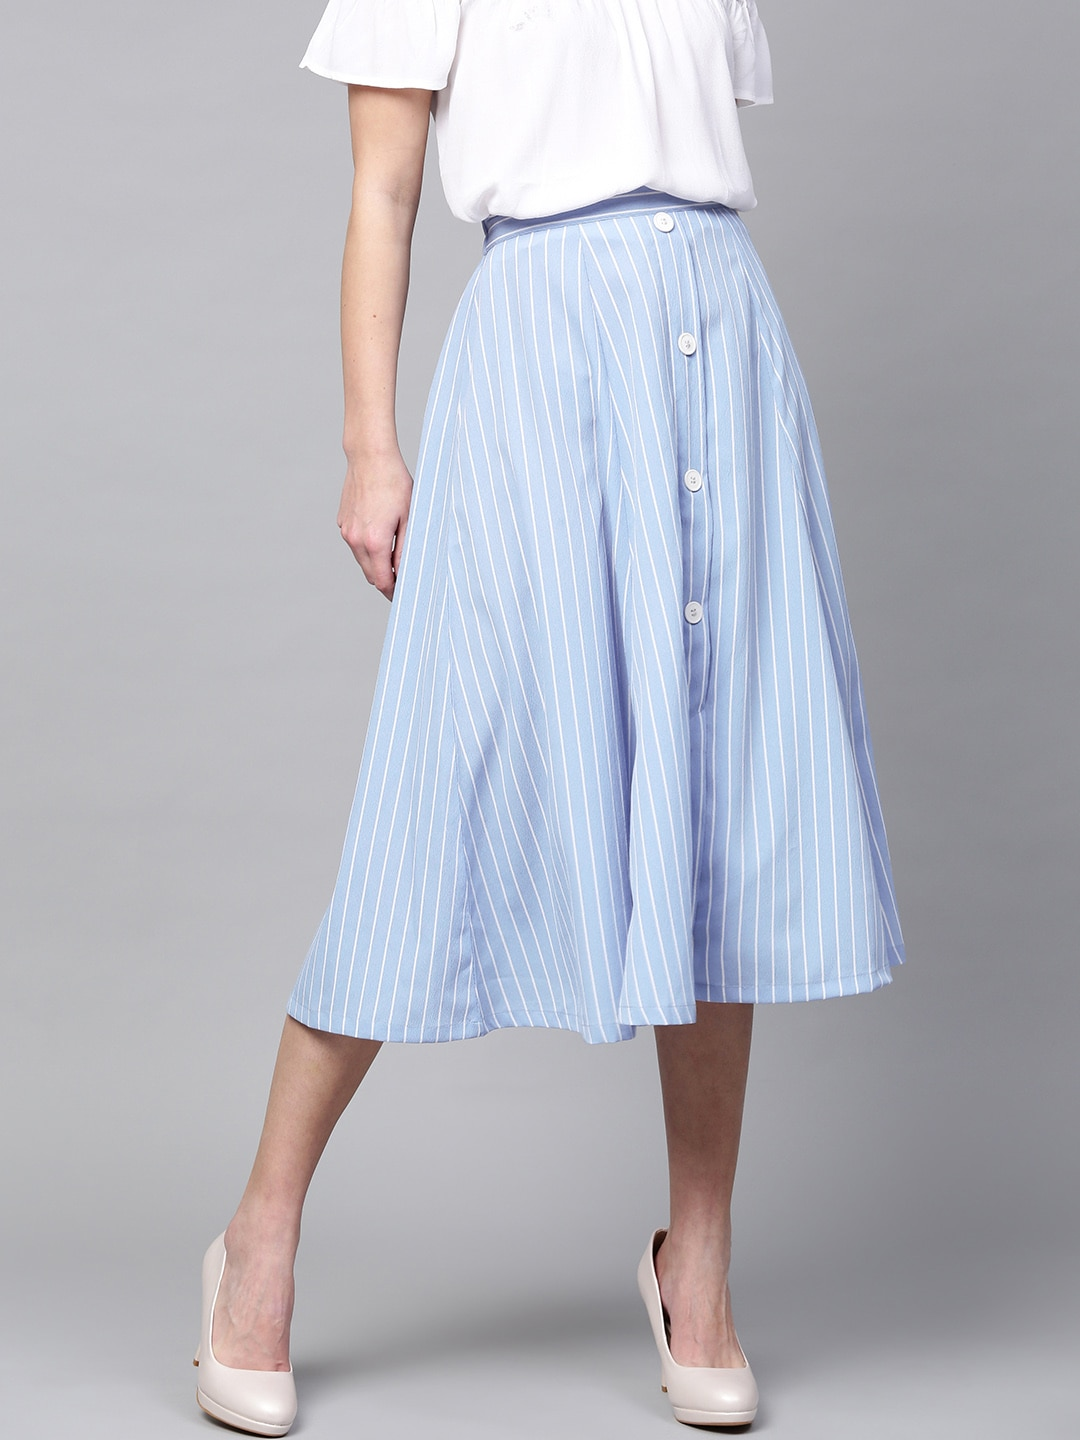 cee918c0b9 Women Pleated Skirts - Buy Women Pleated Skirts online in India